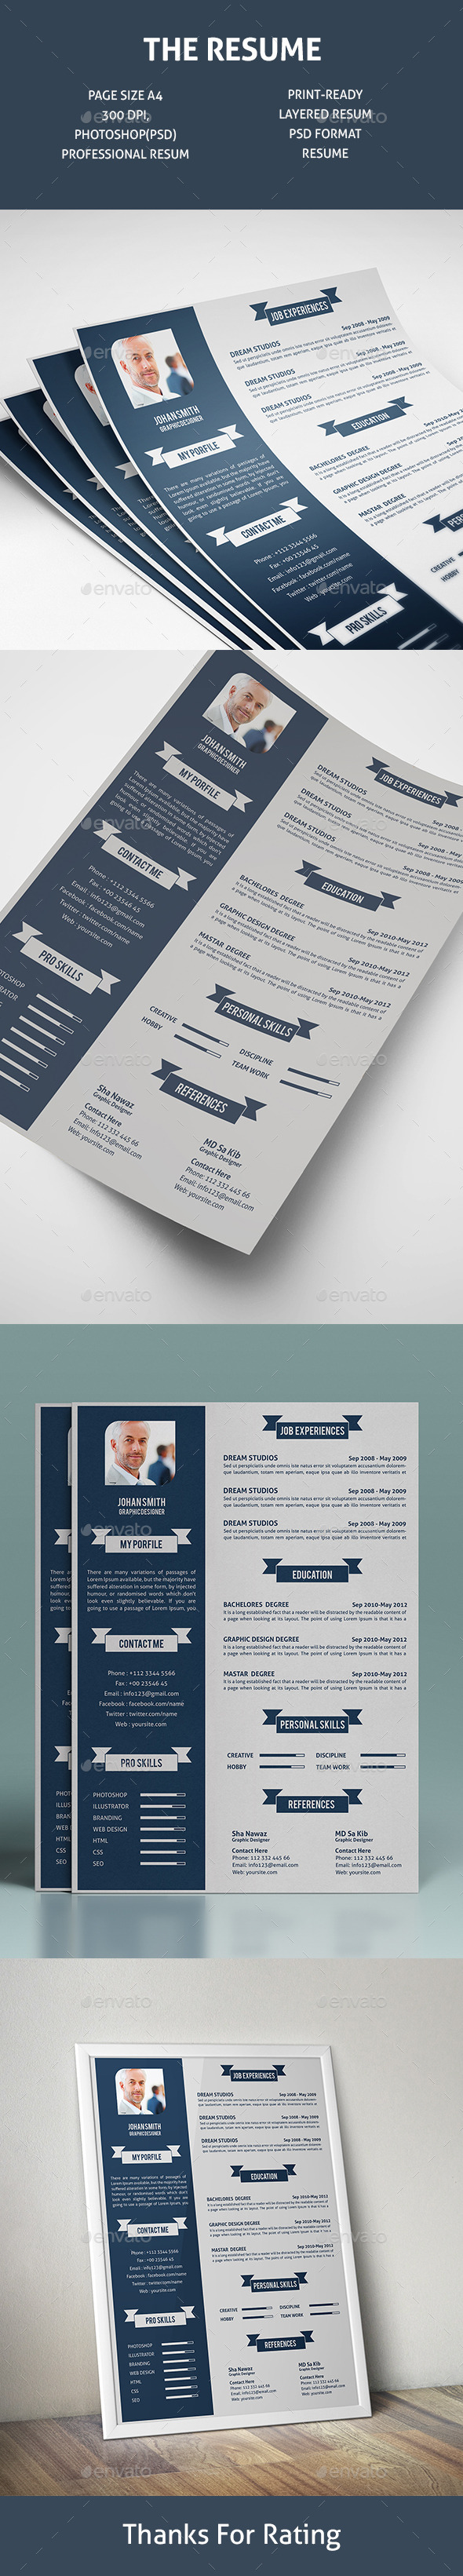 GraphicRiver The Resume V-1 11783494